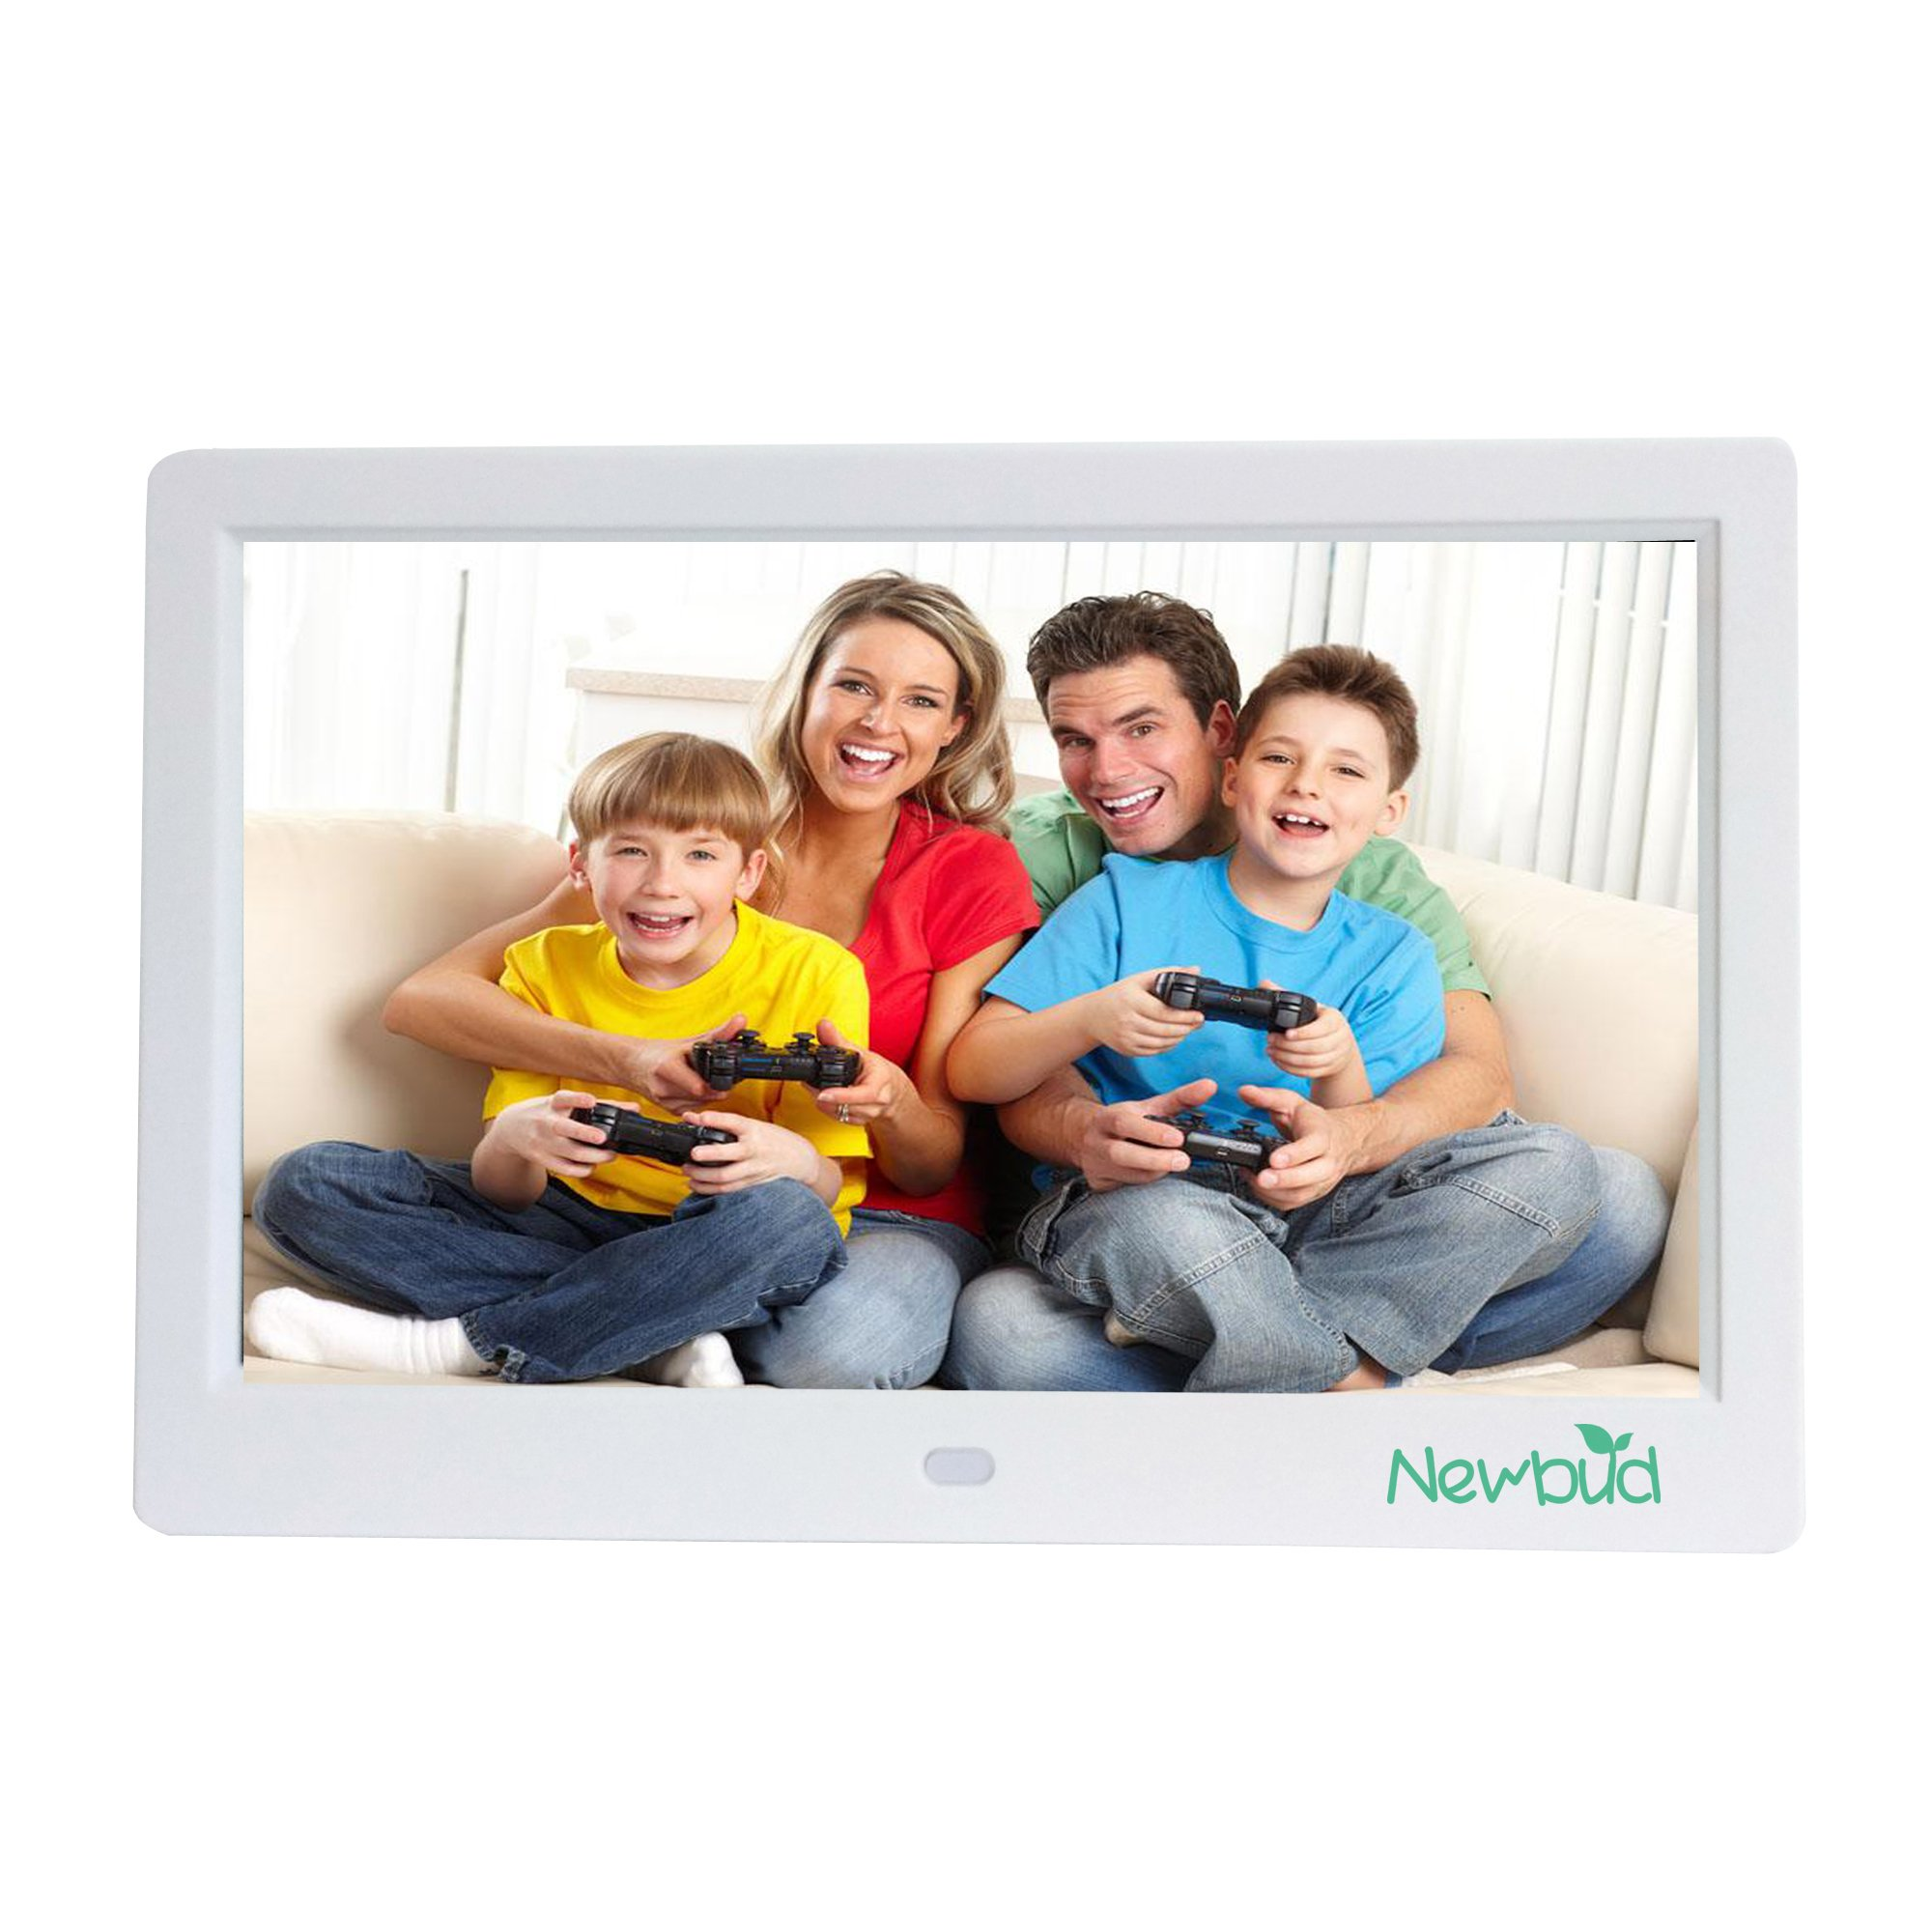 10 inch TFT LCD Wide Screen Digital 2000 Photos Display Frame with Calendar Support Tf Sd/Sdhc/Usb Flash Drives- Support 32GB SD Card Photo Digital Gift